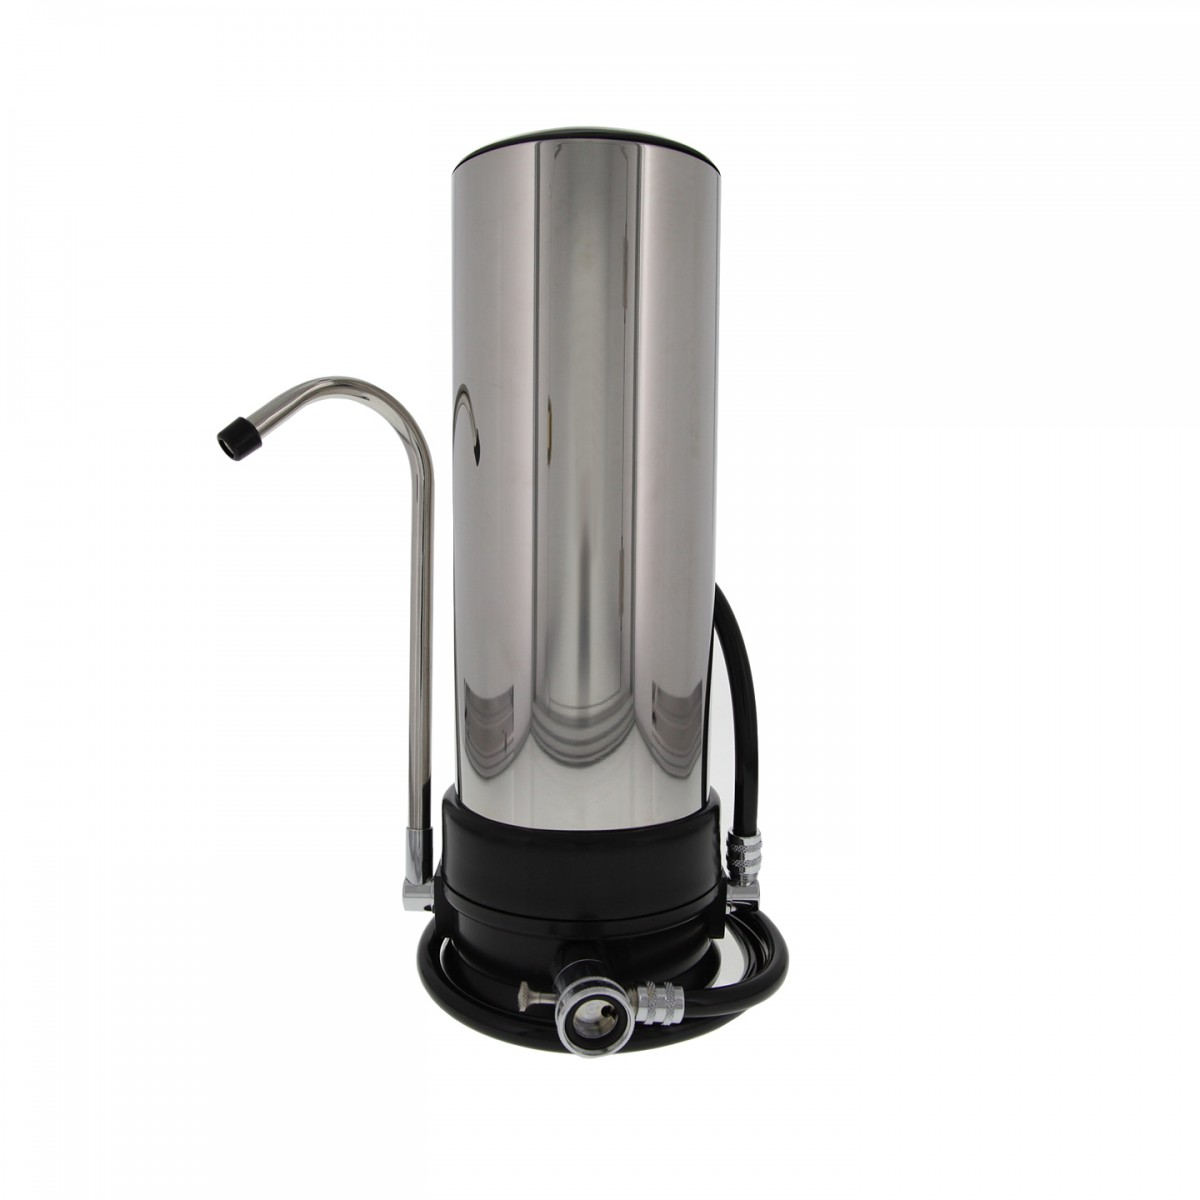 Rainshow 226 R C 100 Condor Drinking Water Filtration System